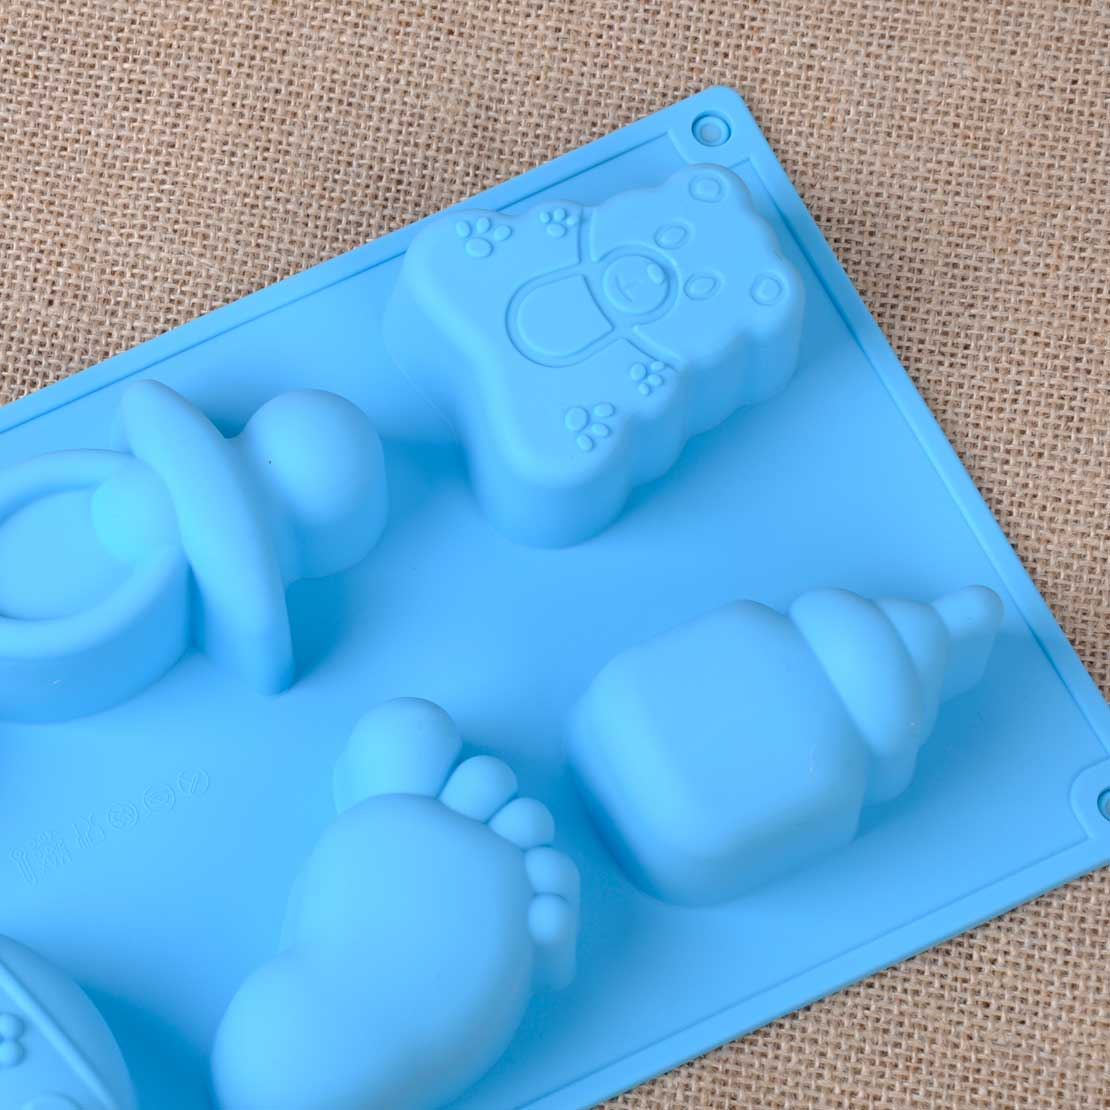 3D Baby Silicone Fondant Cake Decorating Mould Mold ...